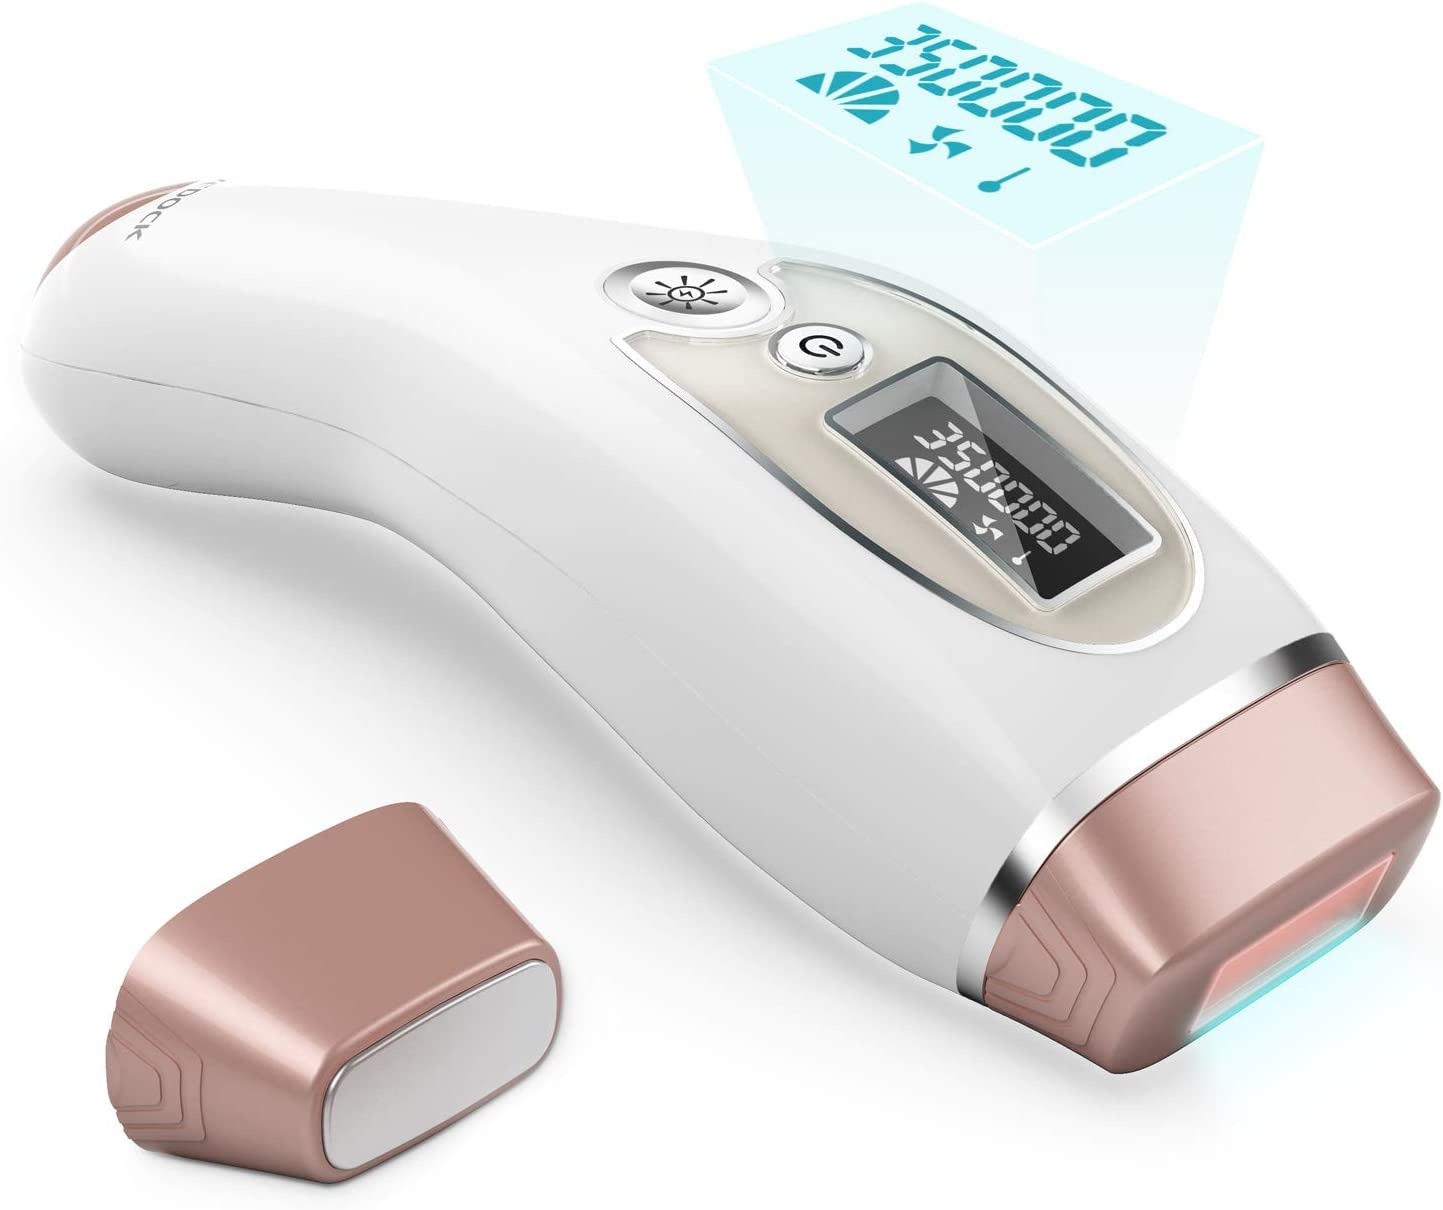 IPL Permanent Hair Removal, Laser Hair Removal for Women and Men,Home Use Painless Hair Remover Device for Facial and Whole Body